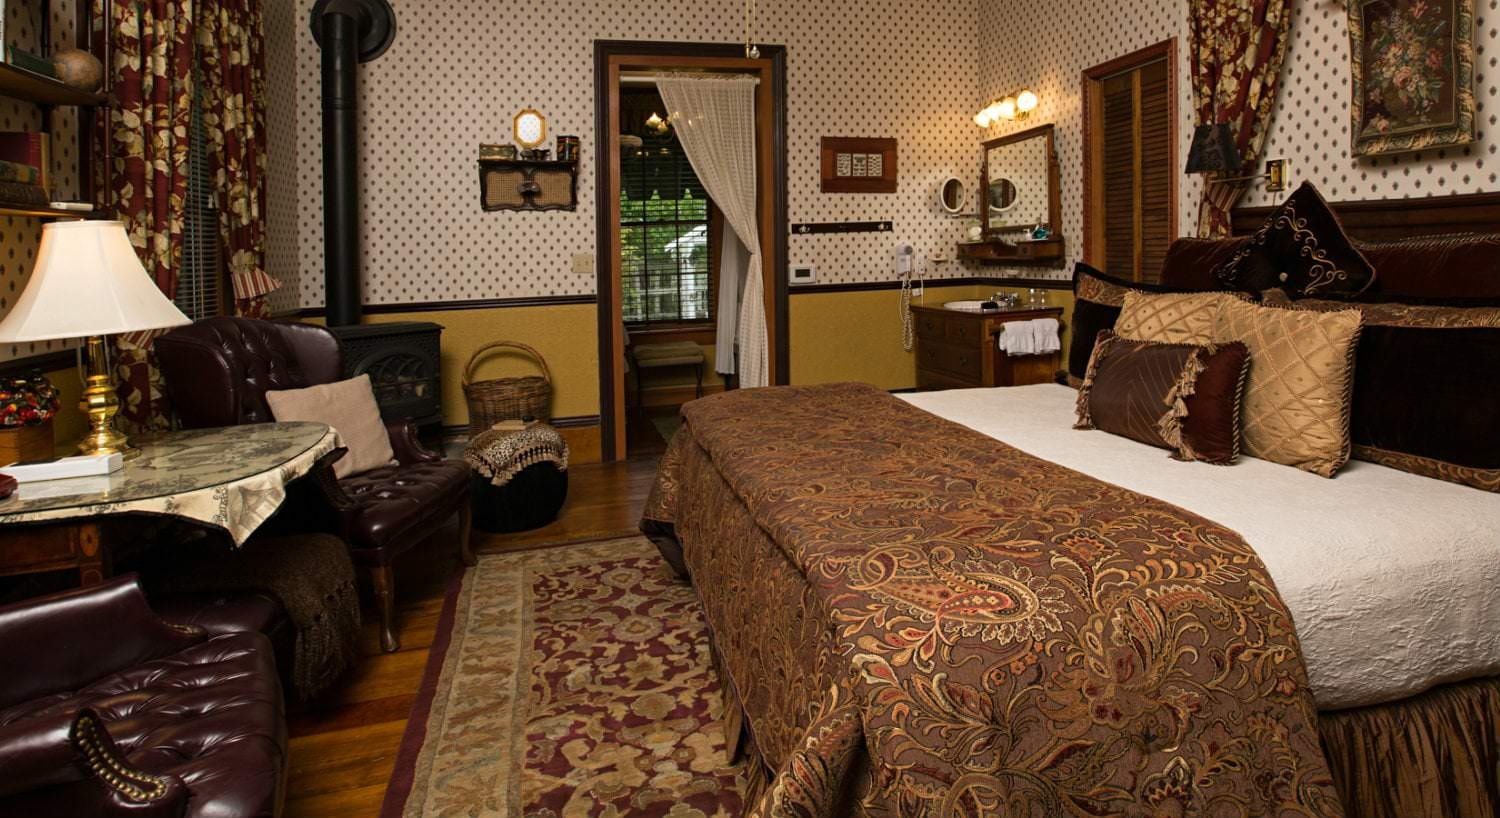 Guest room with brown paisley and gold covered bed, wood floors, area rug, dark leather chairs flanking glass top table